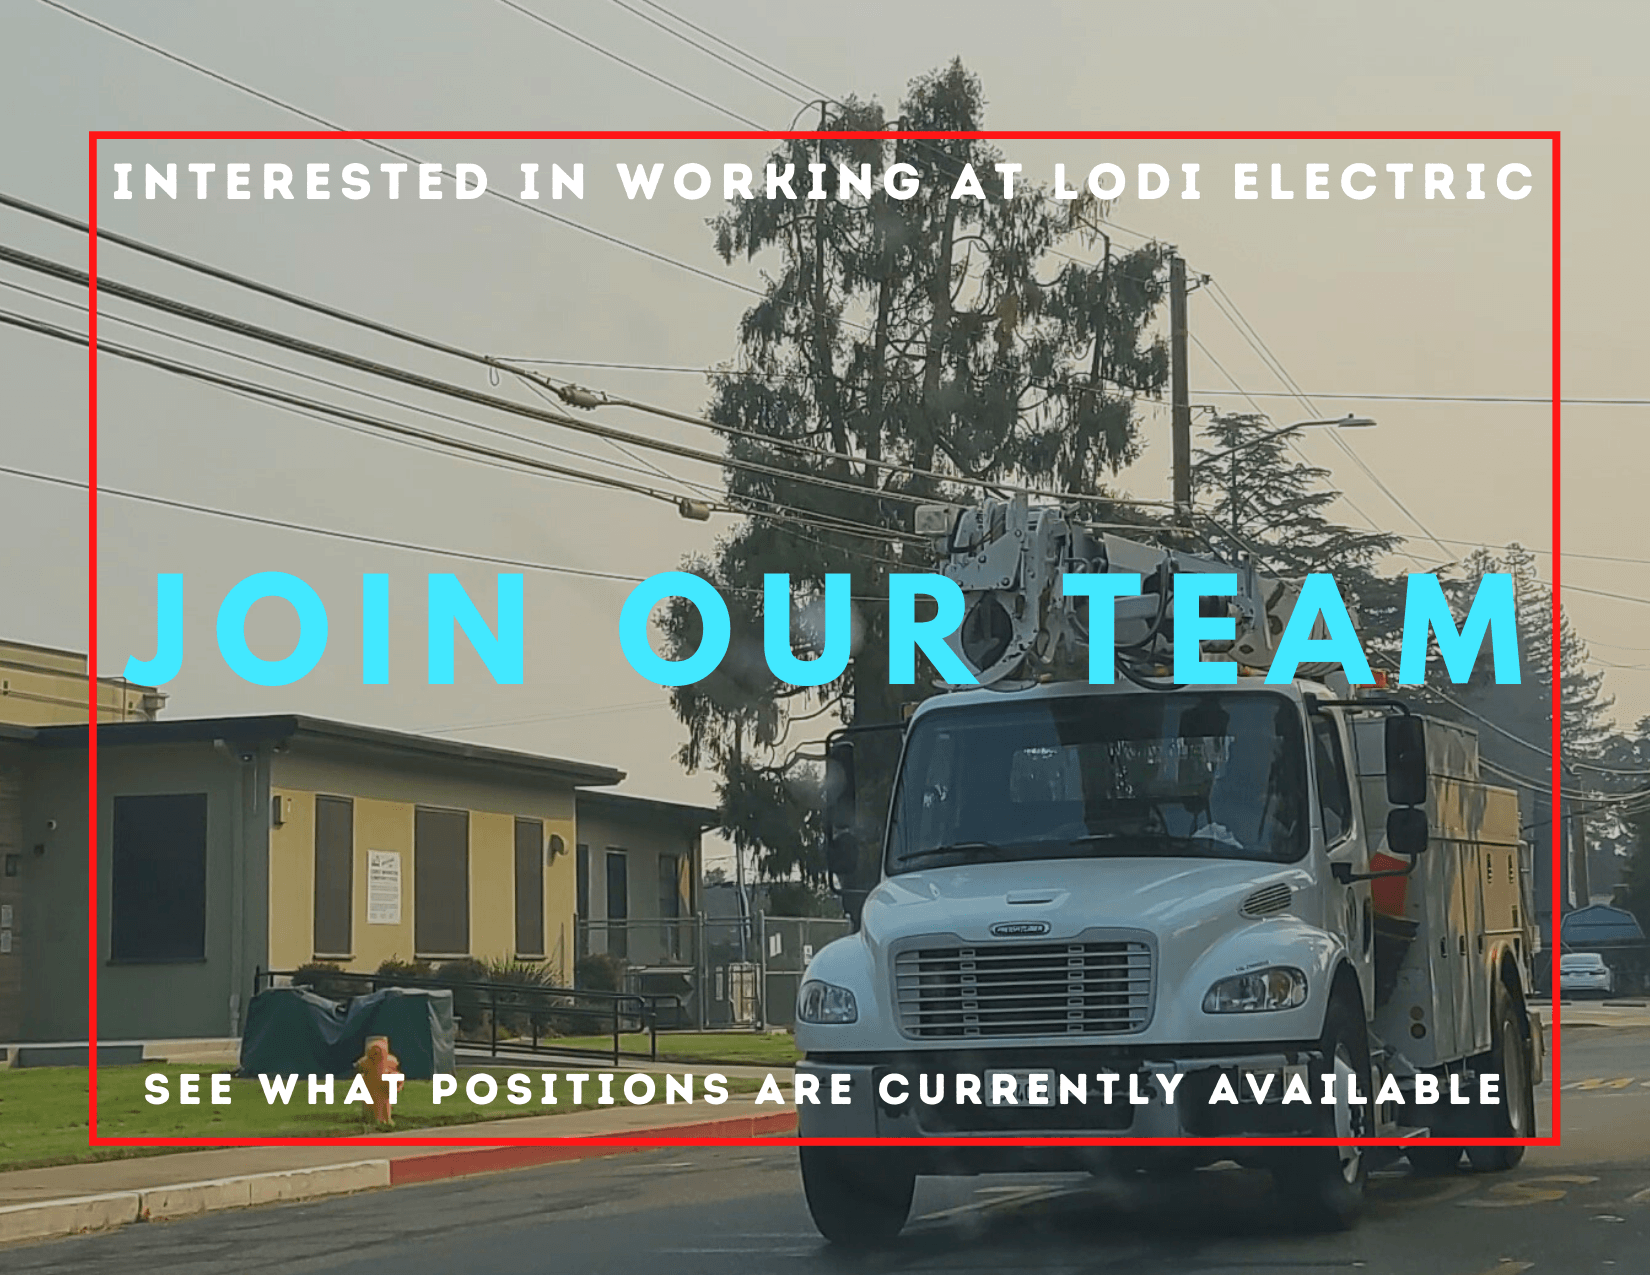 Interested in working at Lodi Electric. Join our team. See what positions are currently available.